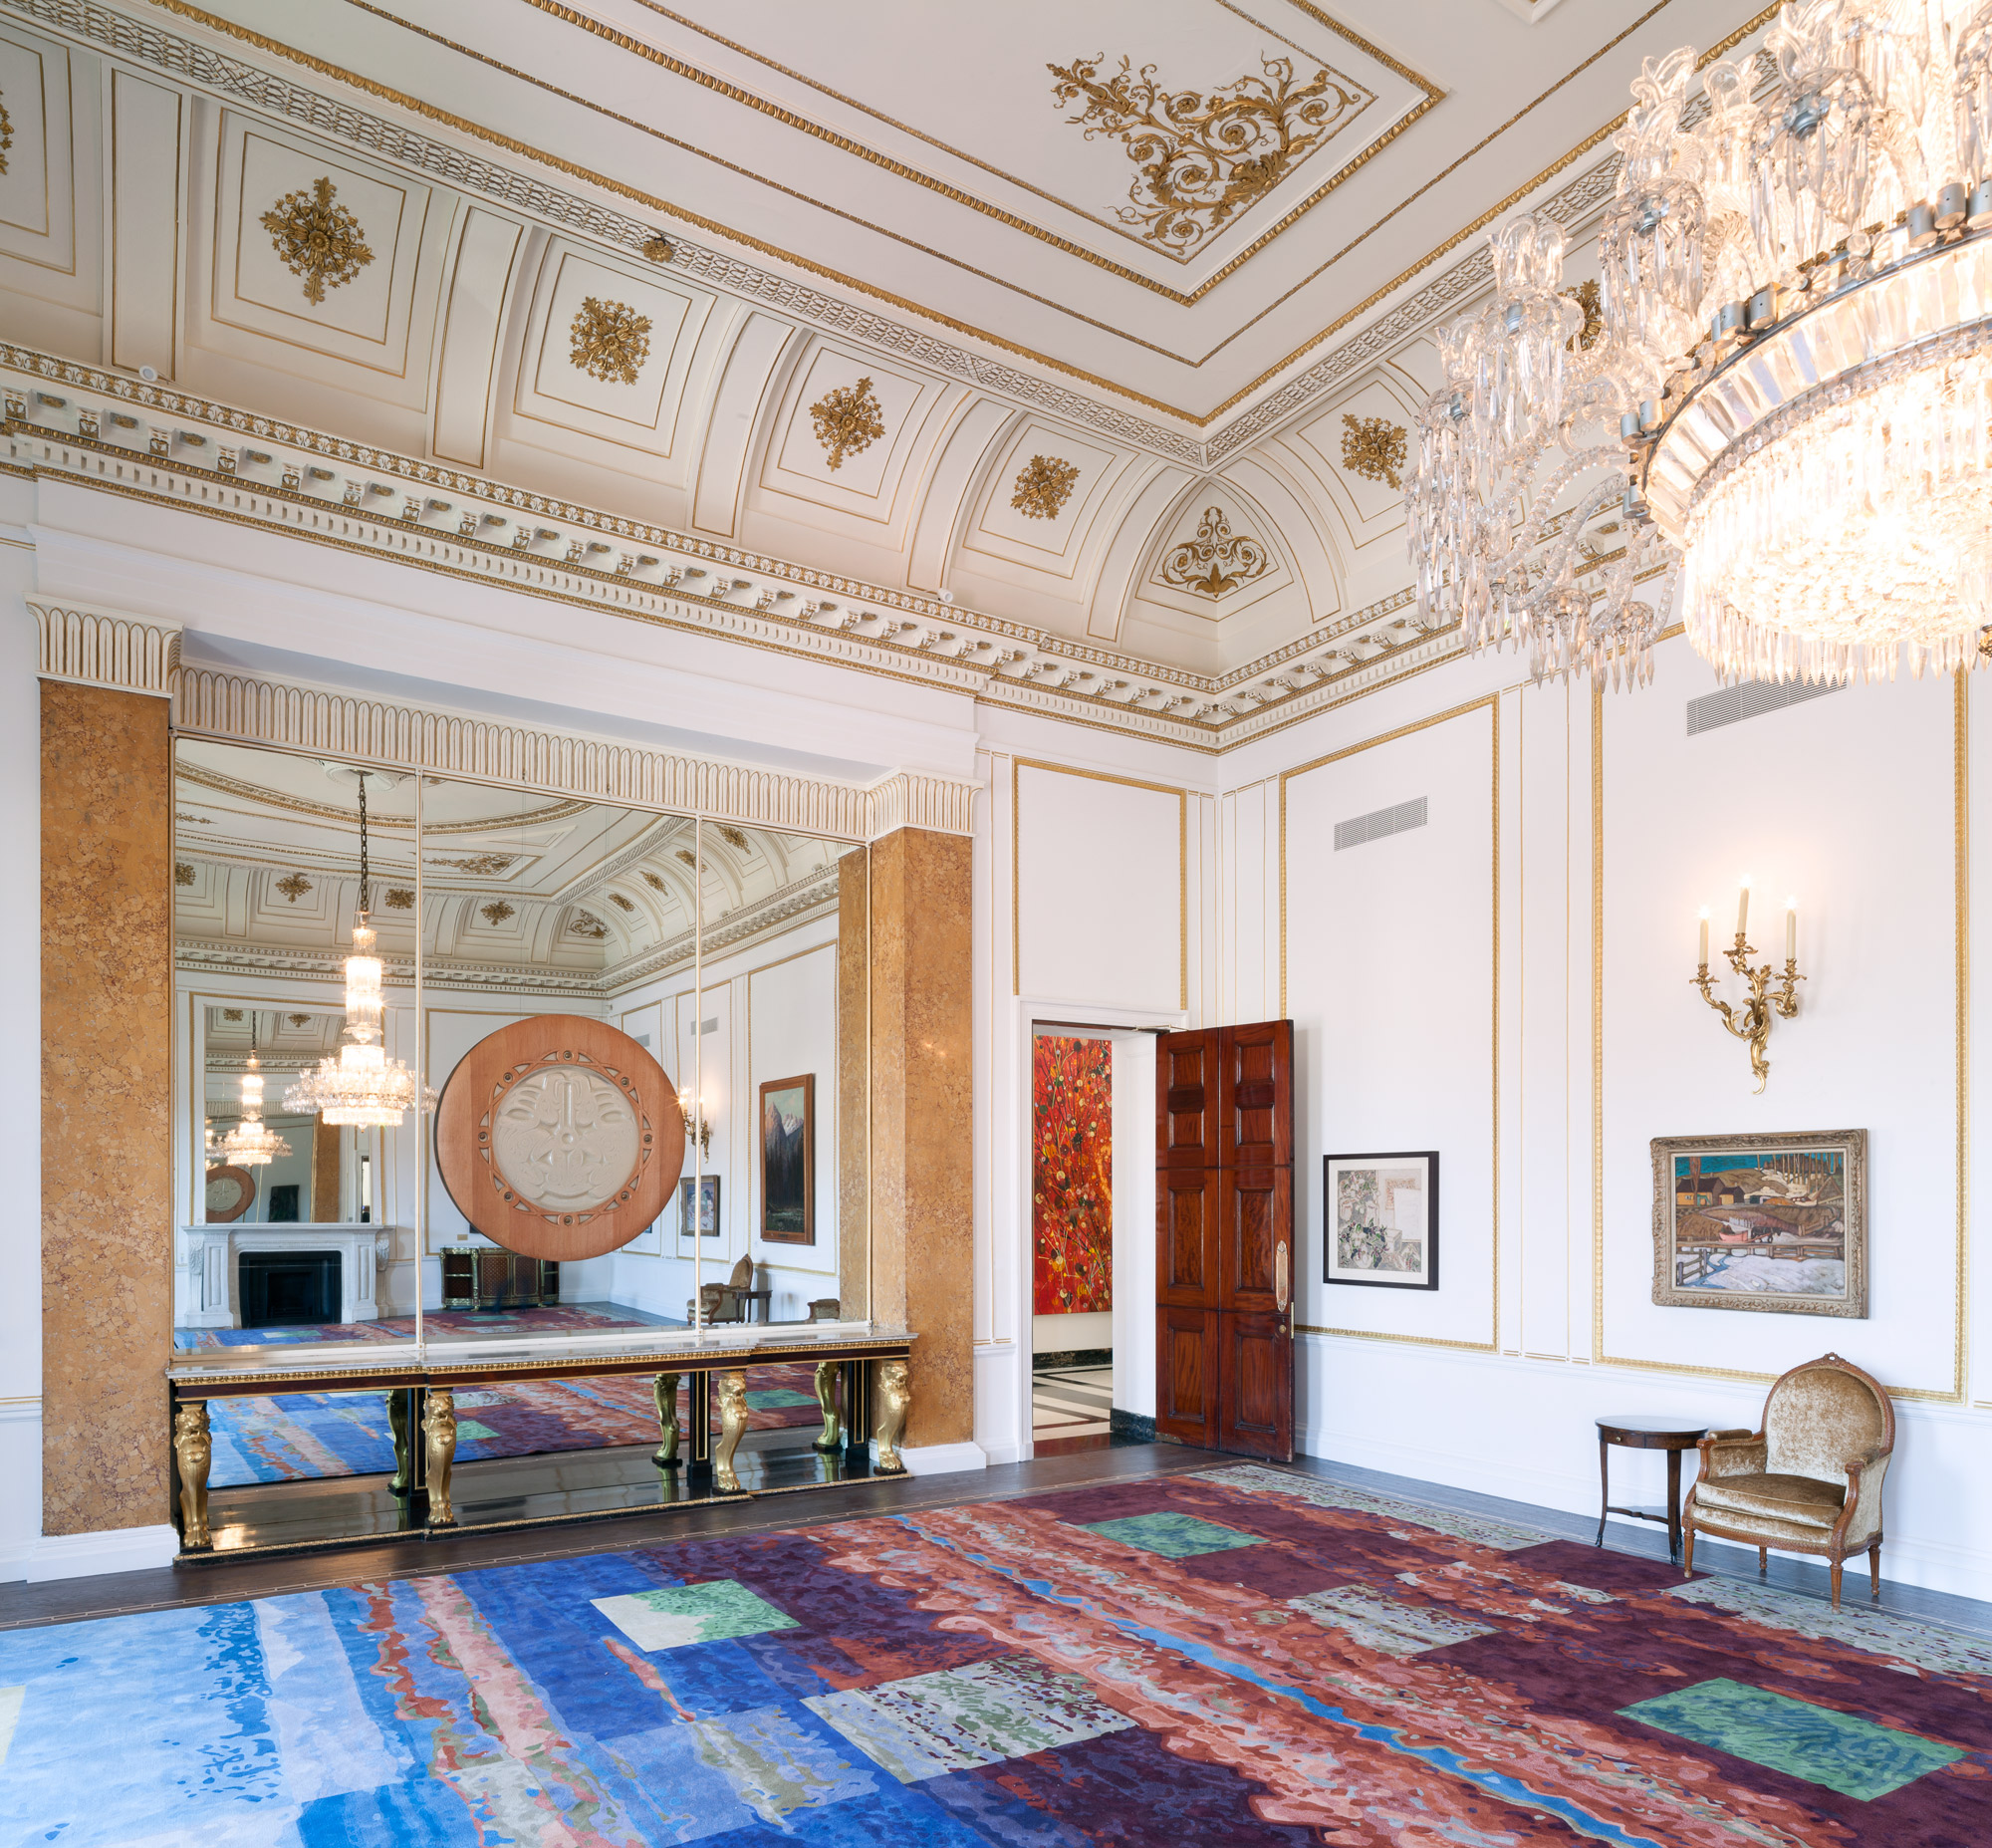 """The MacDonald Room rug features the largestrug (38 feet by 26 feet) inCanada House. It was inspired by """"Foothill,""""one of four of Sean William Randall's works we transformed into carpet designs. Photo: ©Ben Blossom"""